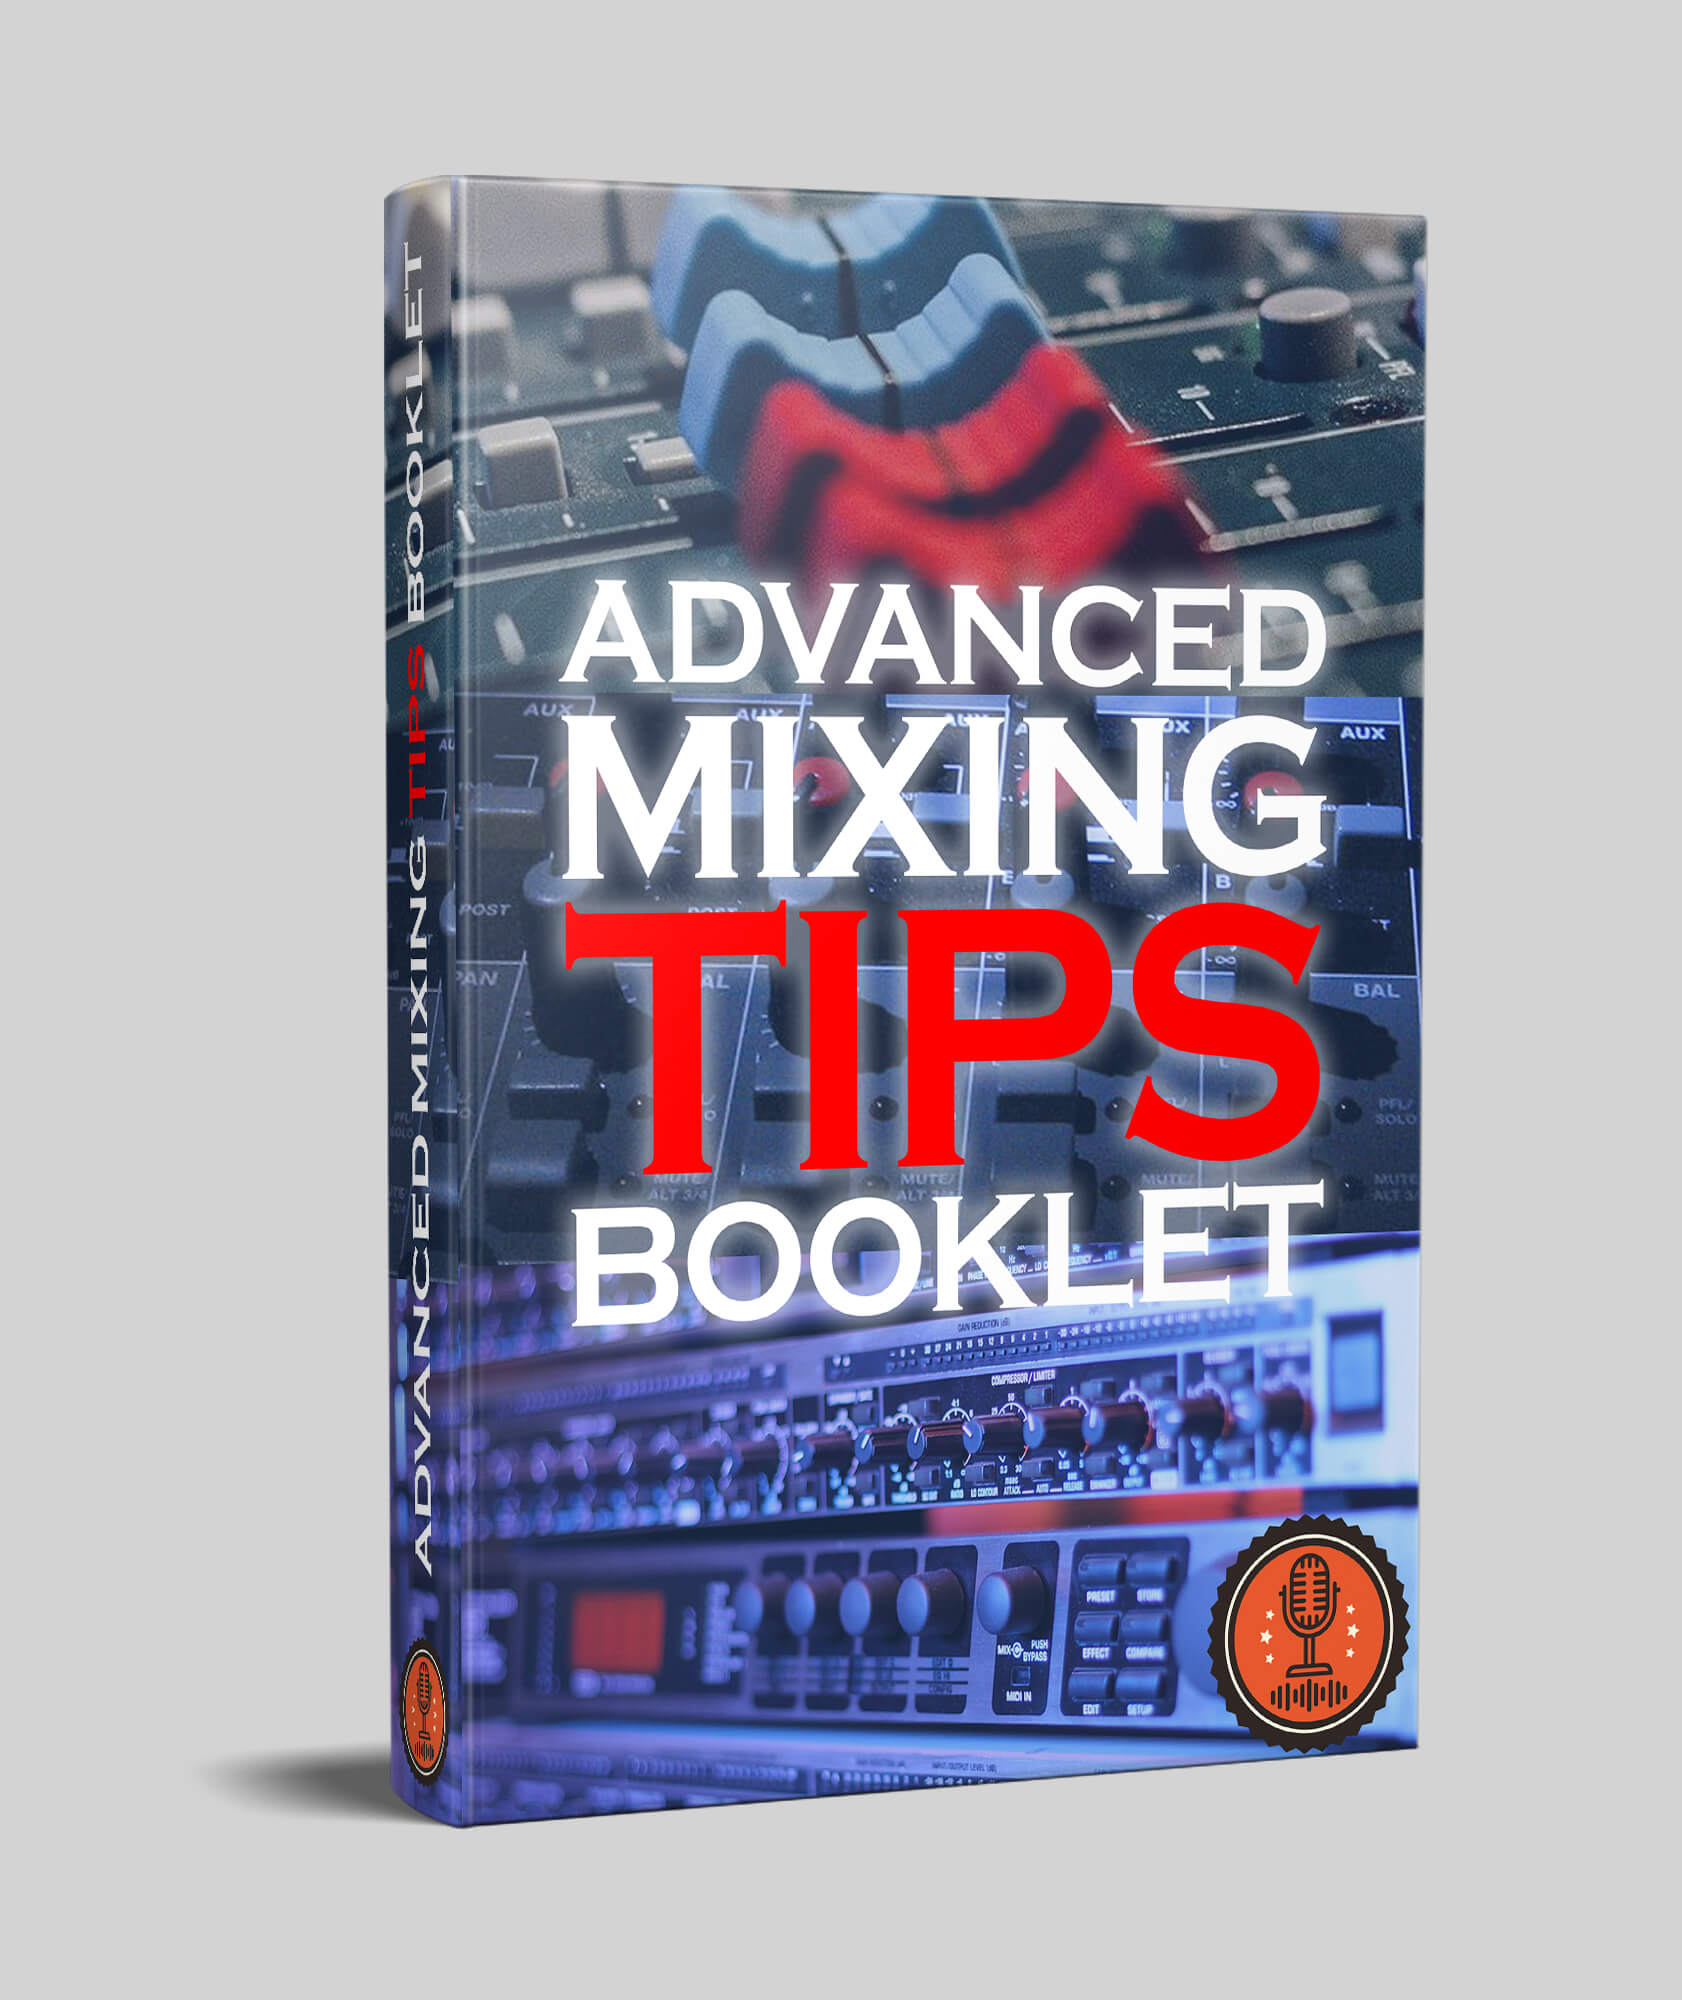 Advanced Mixing Tips Booklet Product Image